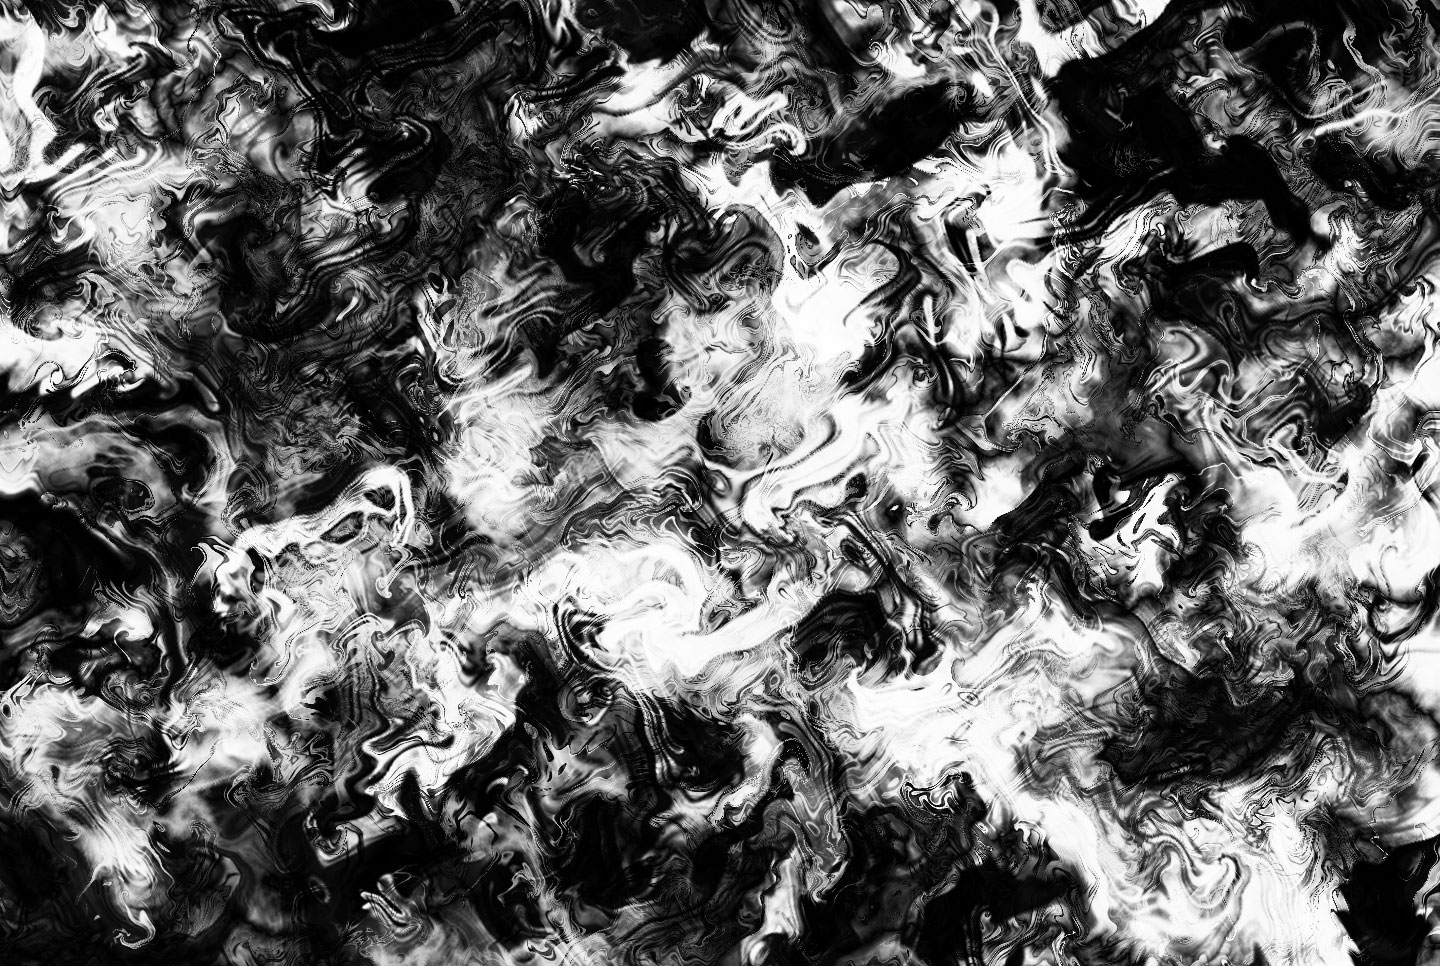 A similar pattern made in Photoshop with layers of Difference cloud and generated wave effects